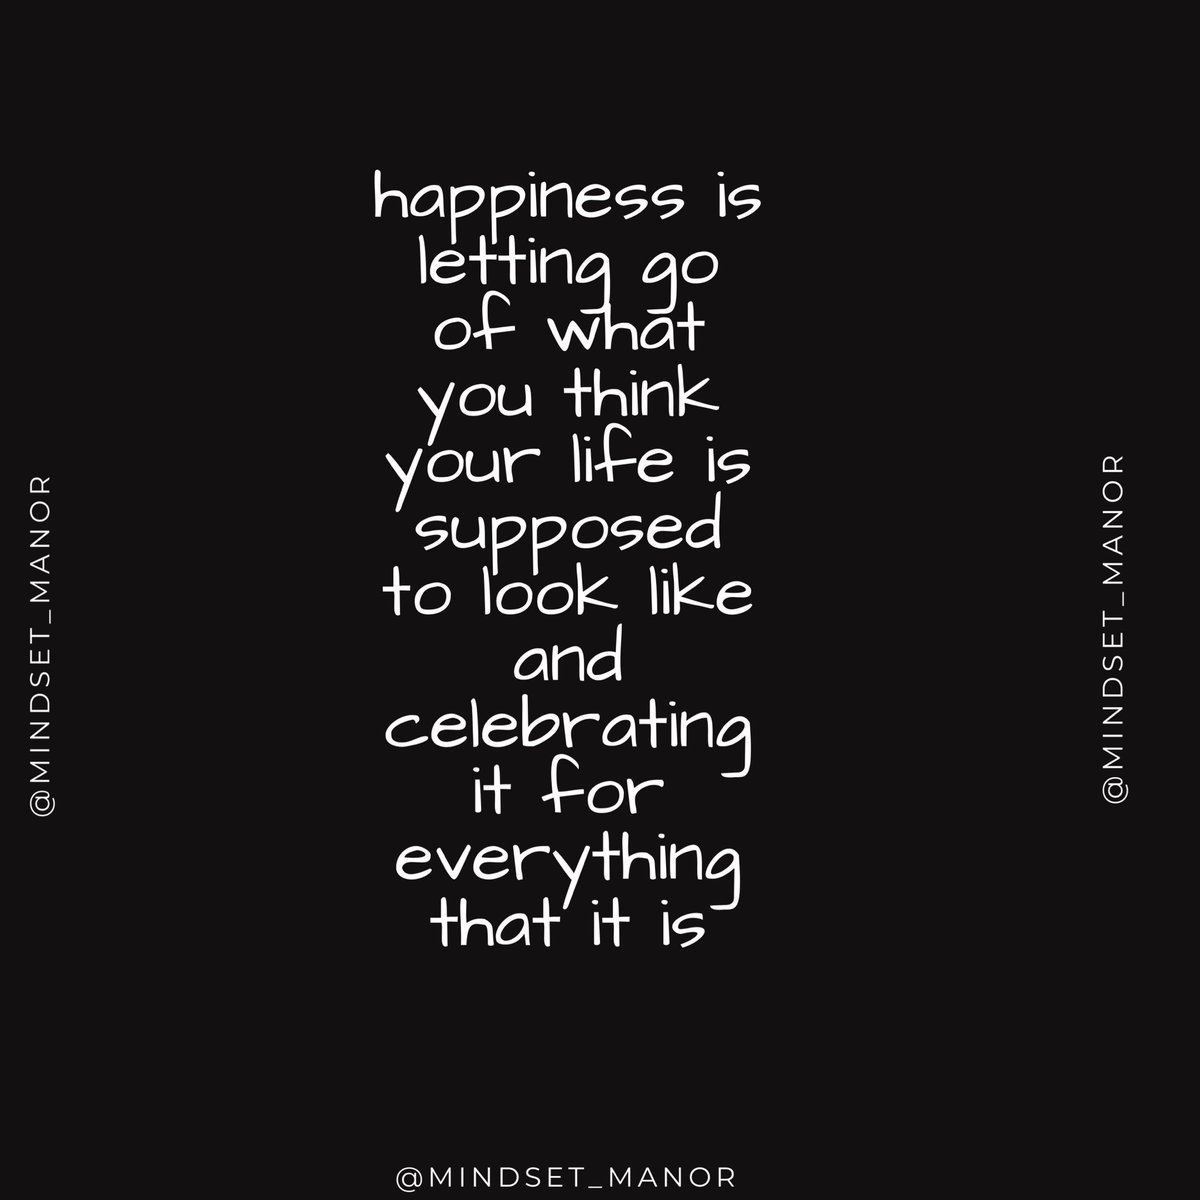 Do you agree? #dontworrybehappy #happiness #mindsetiseverything, #mindsetmatters, #mindsetshift, #motivation101, #motivationalquotes, #motivationalquotesoftheday, pic.twitter.com/MX0yYkapf9